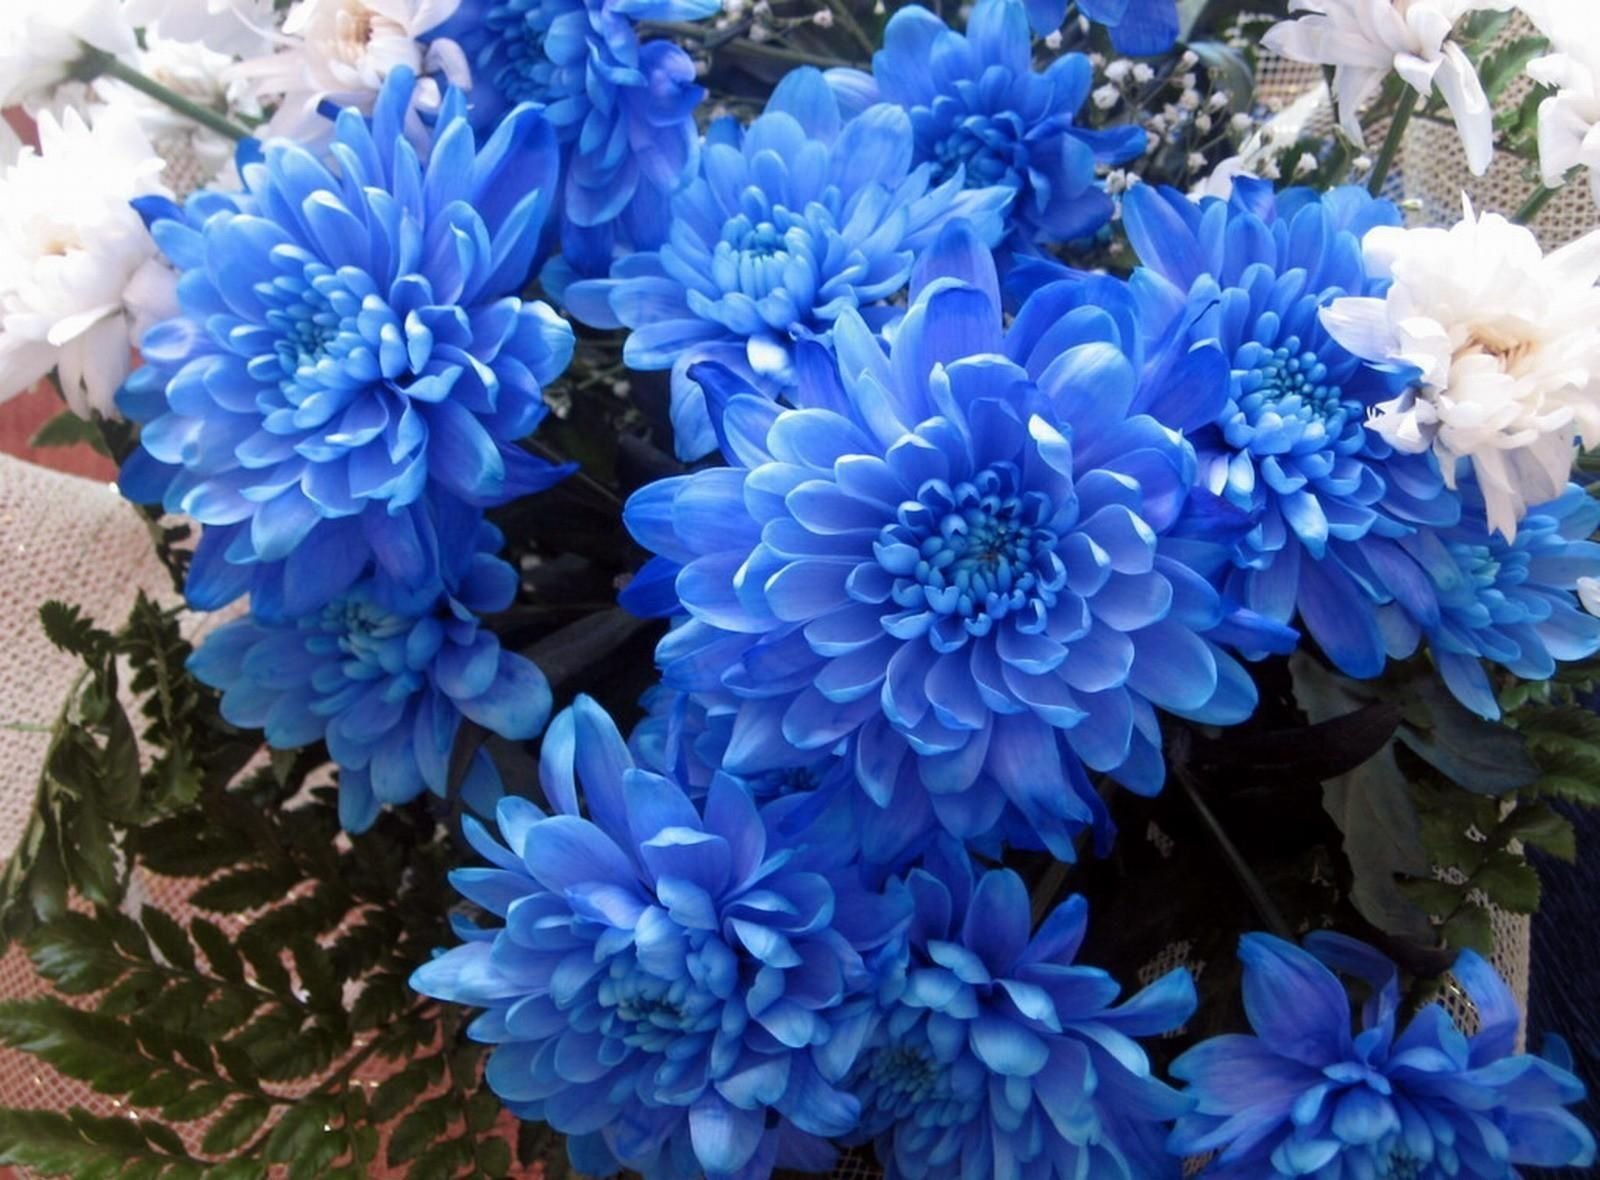 blue chrysanthemum bouquet - Google Search | life ...